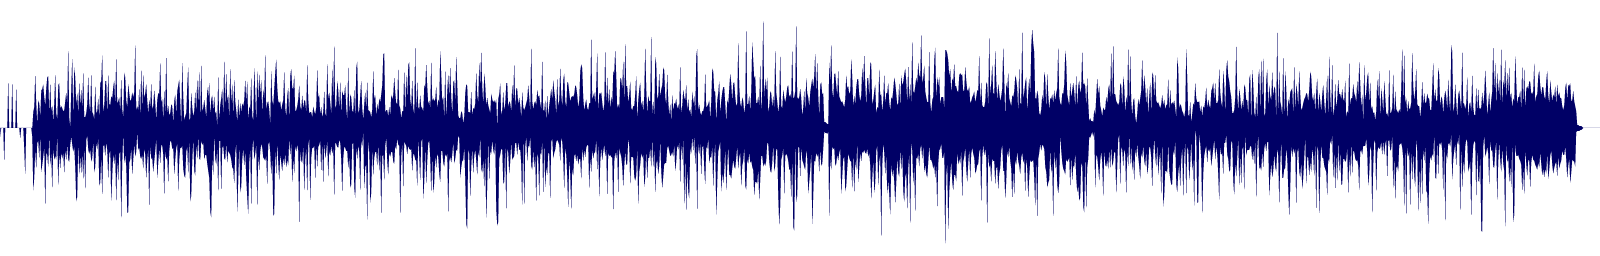 waveform of track #112194